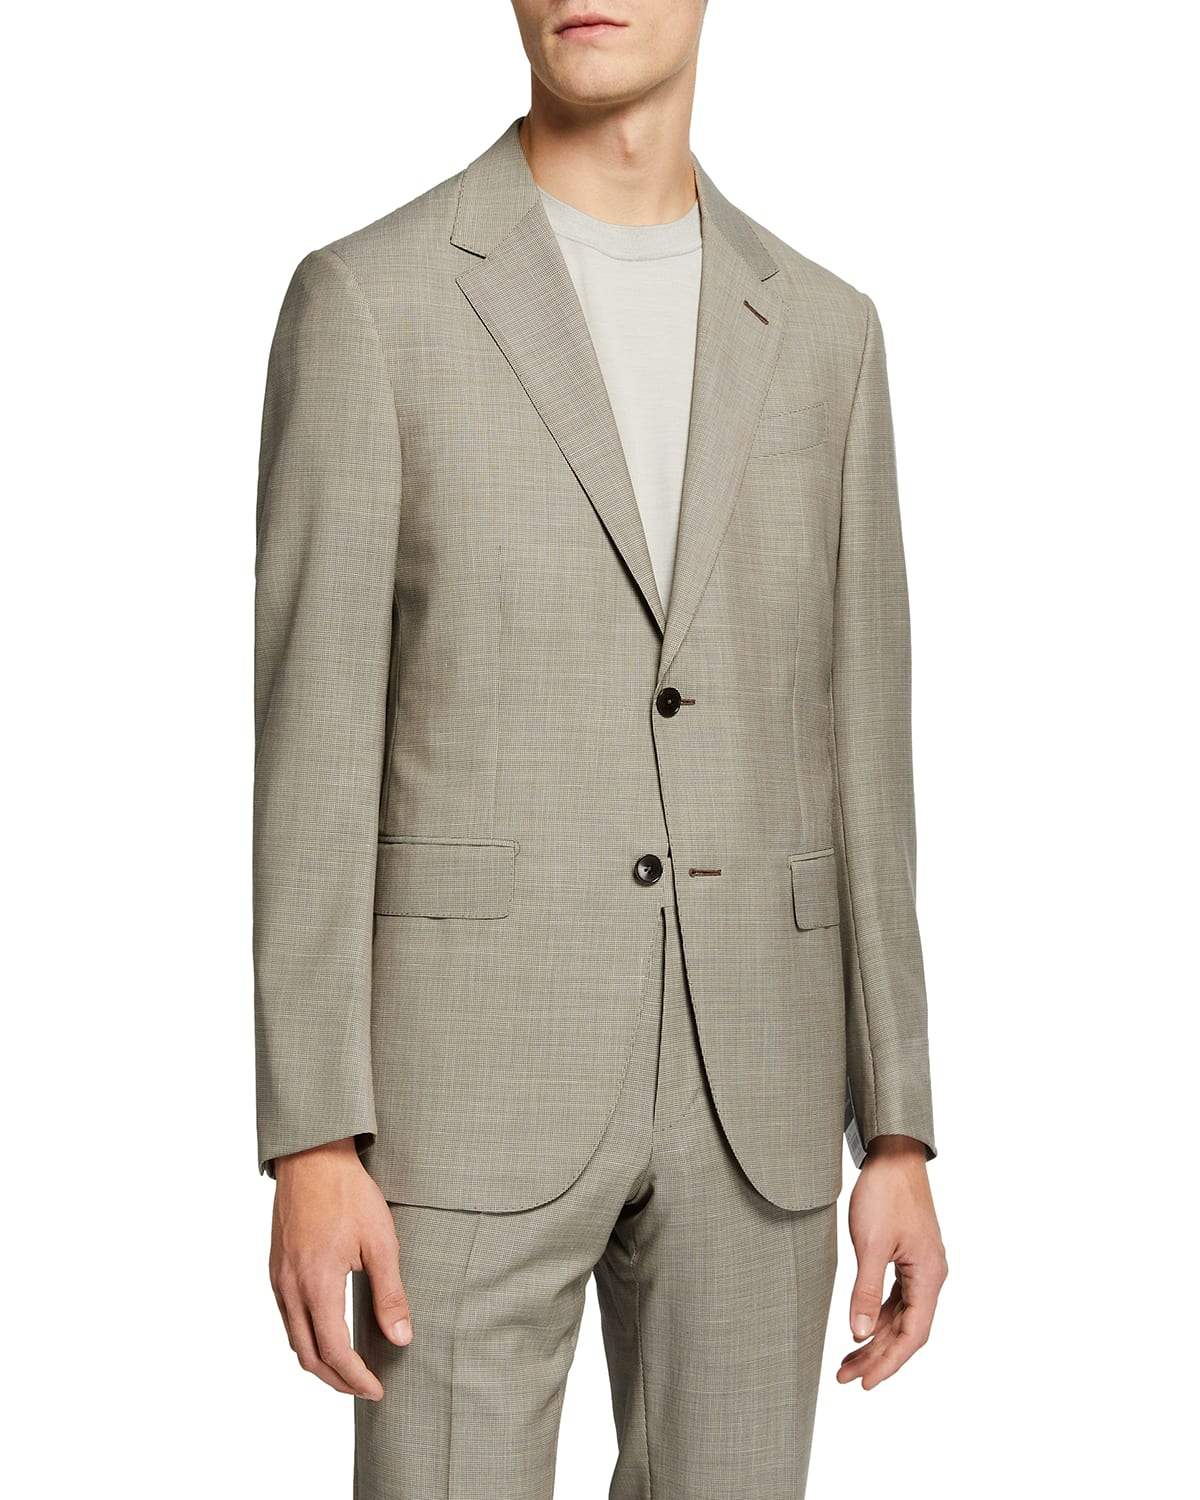 Men's Wool-Blend Houndstooth Check Two-Piece Suit